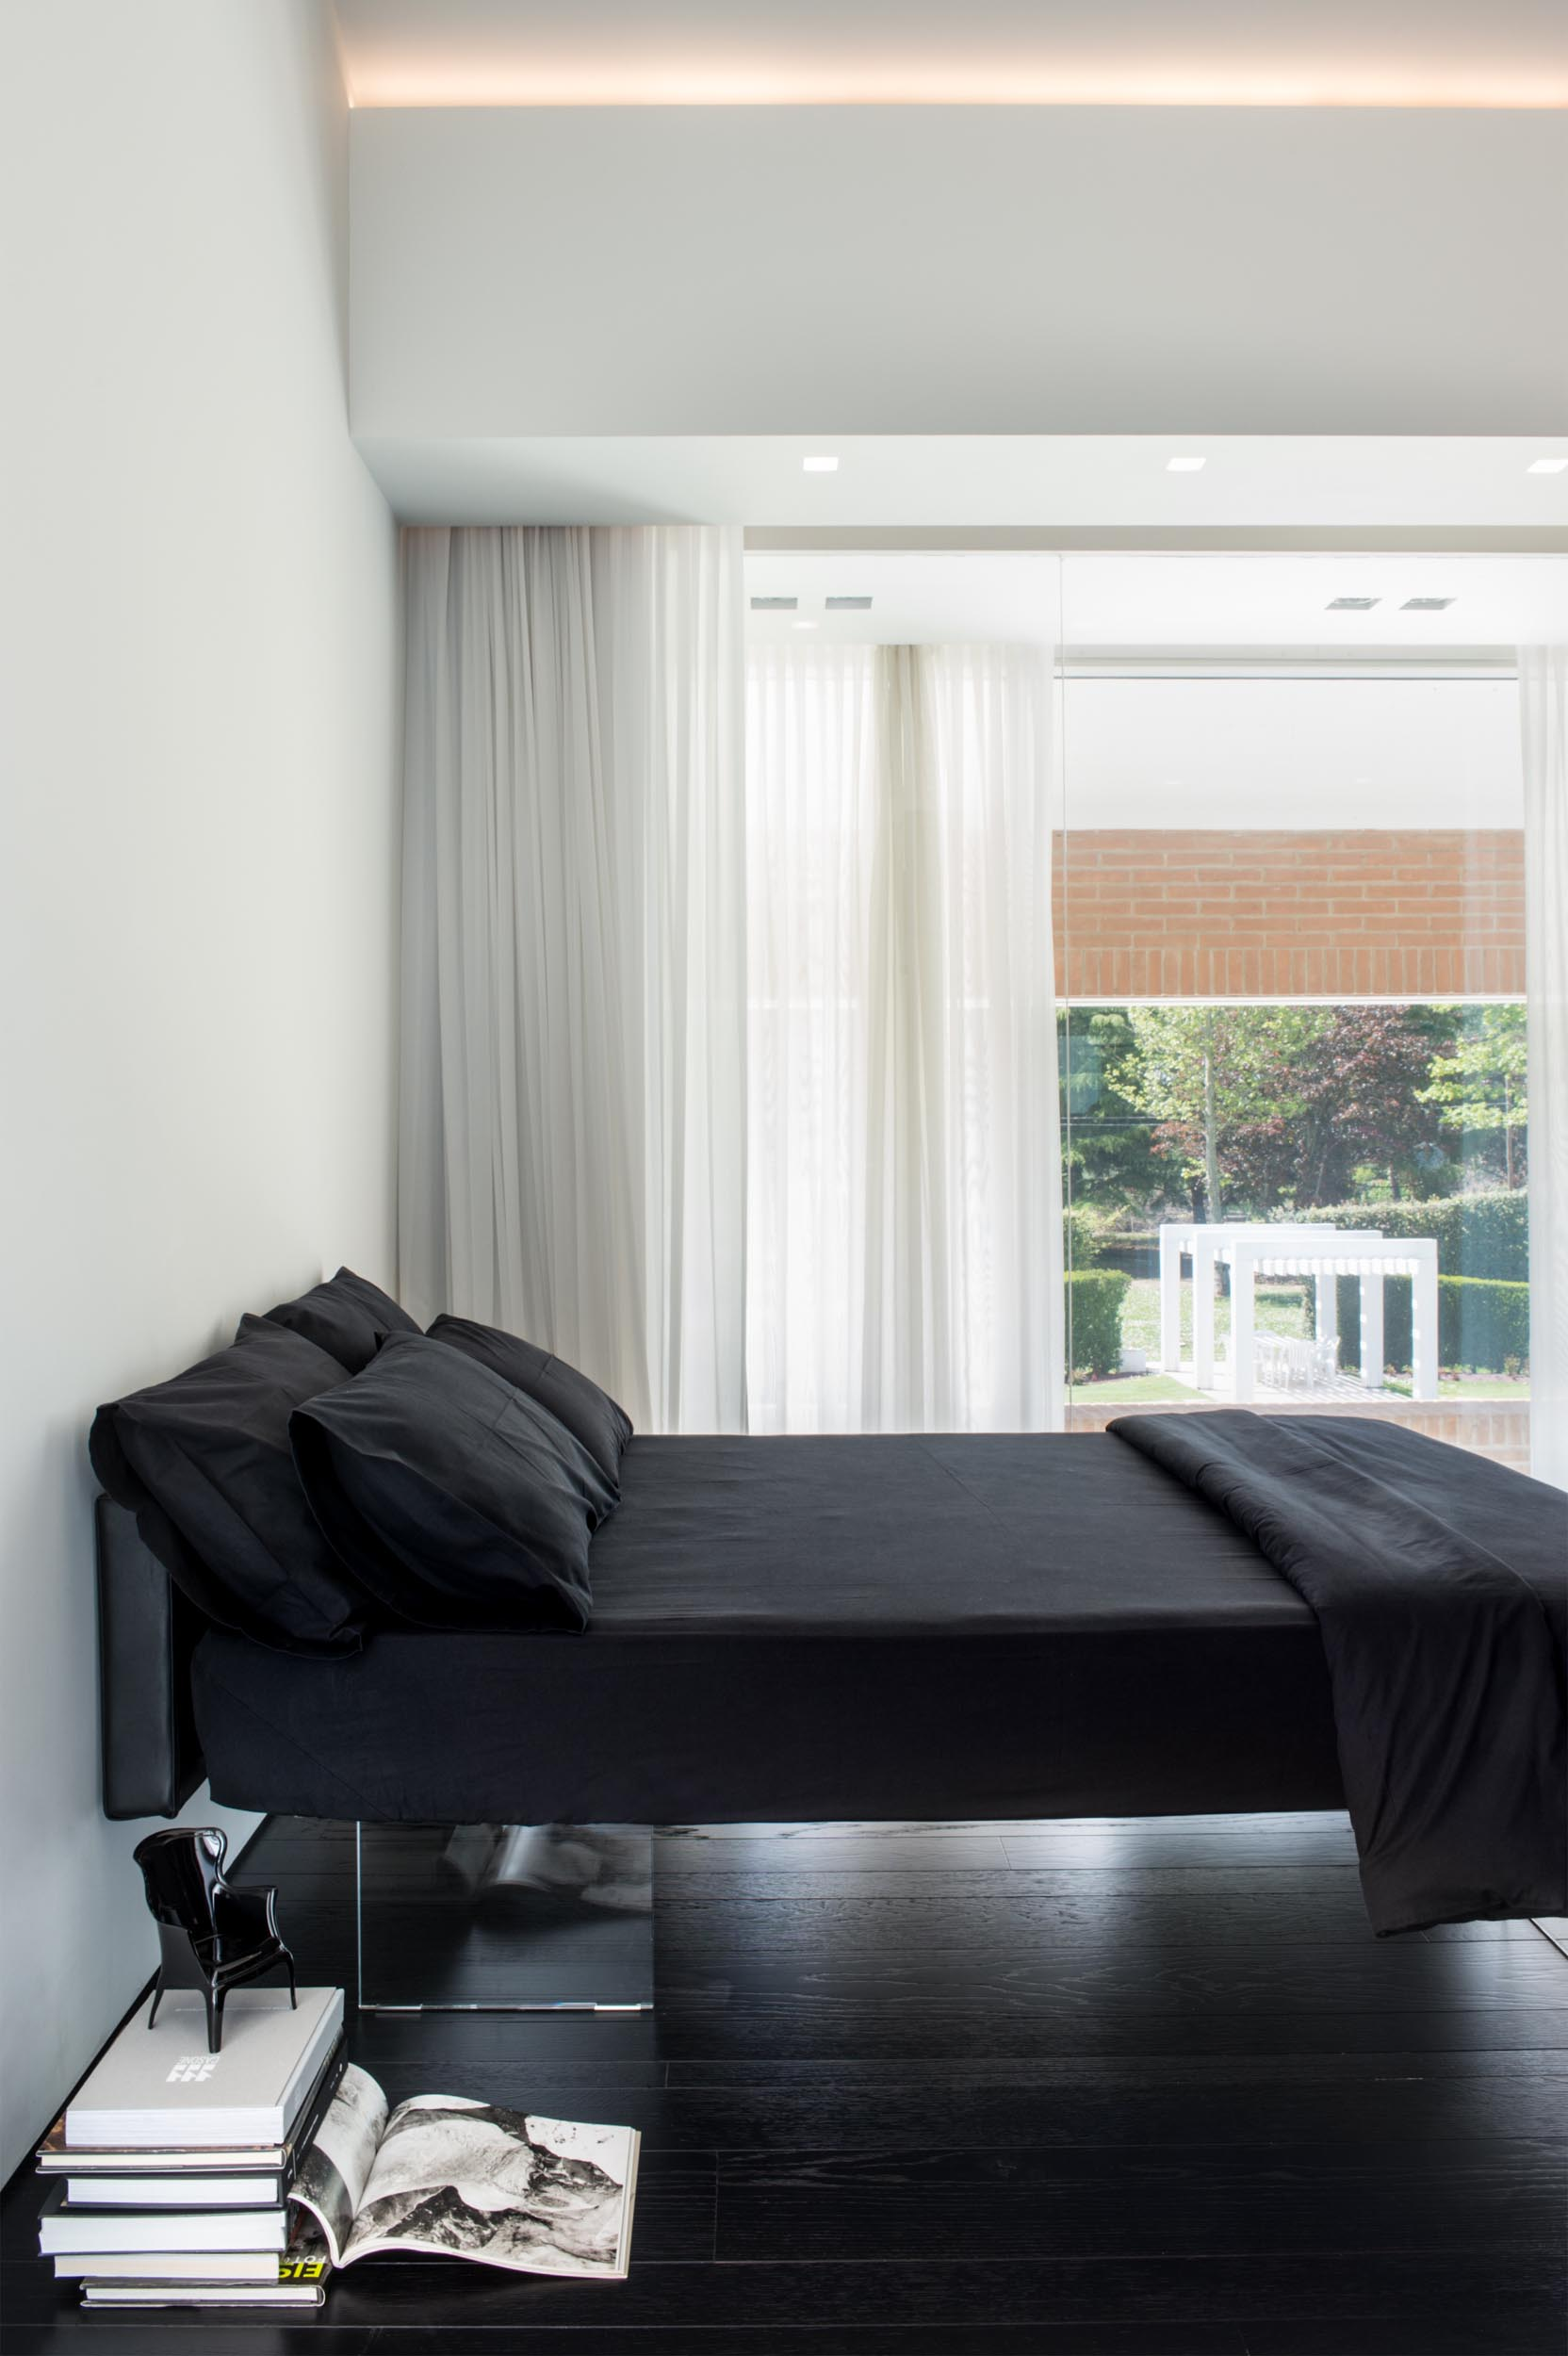 A modern bedroom with a clear bed frame that gives the appearance of a floating bed.